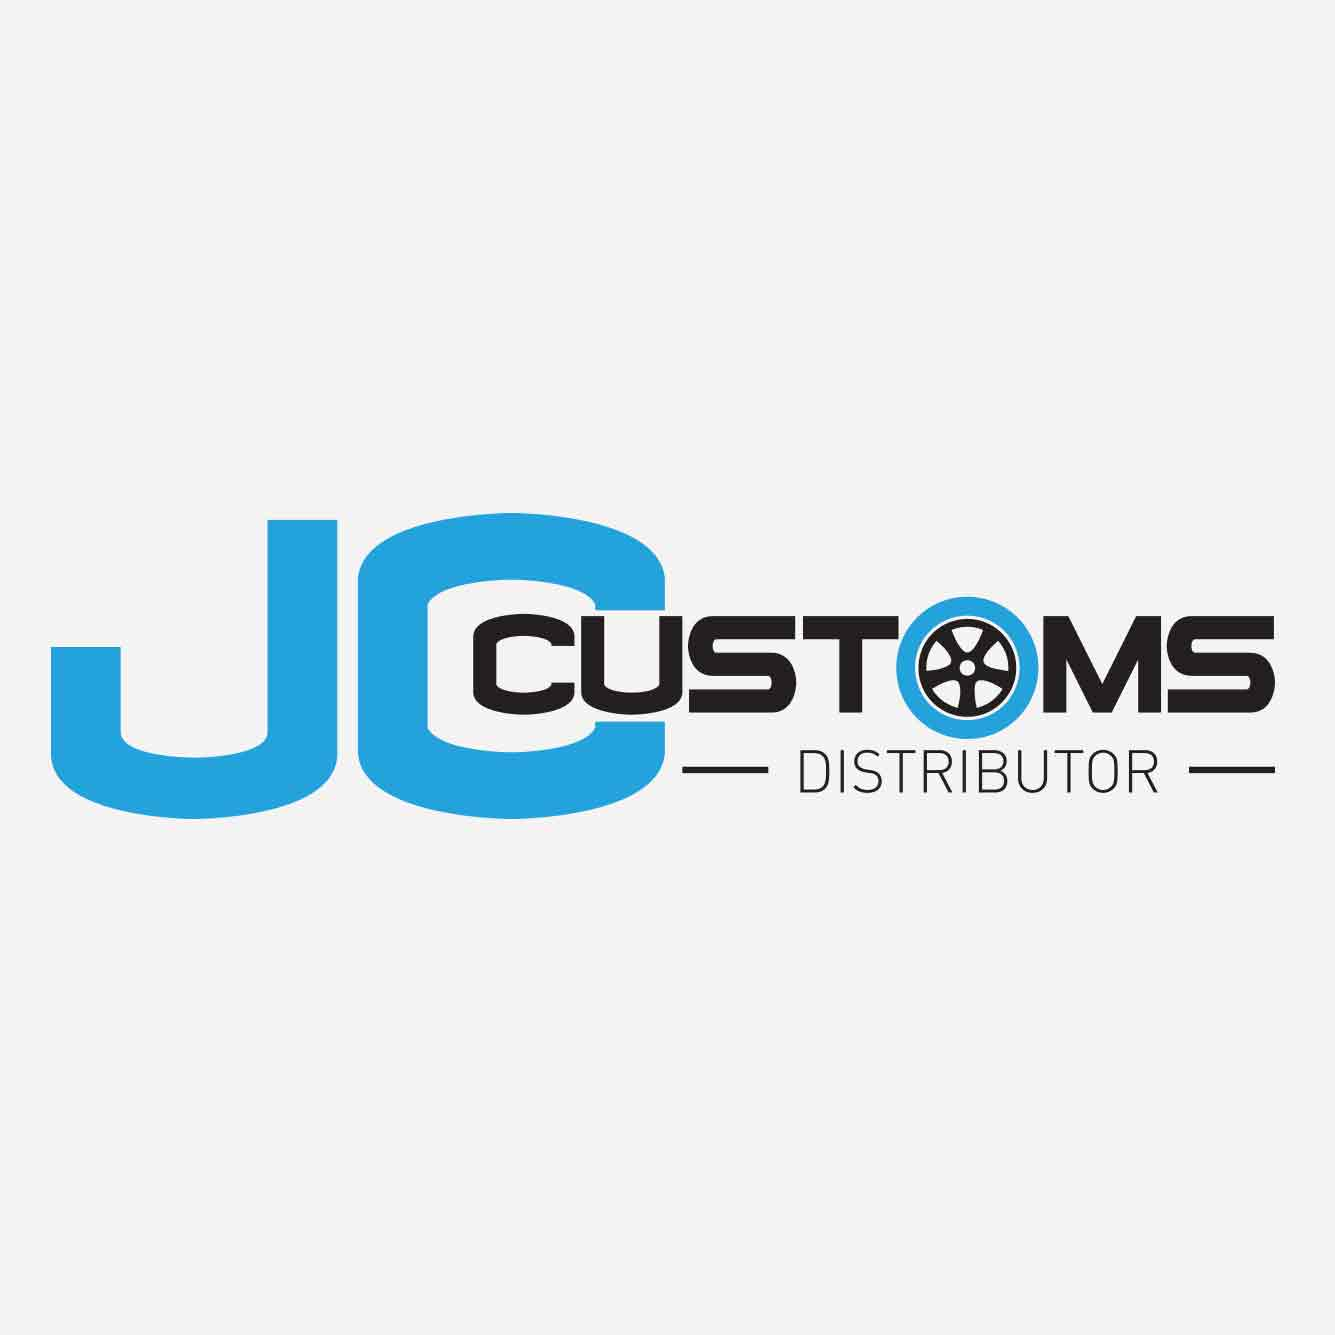 JC Customs Logo Design Brisbane